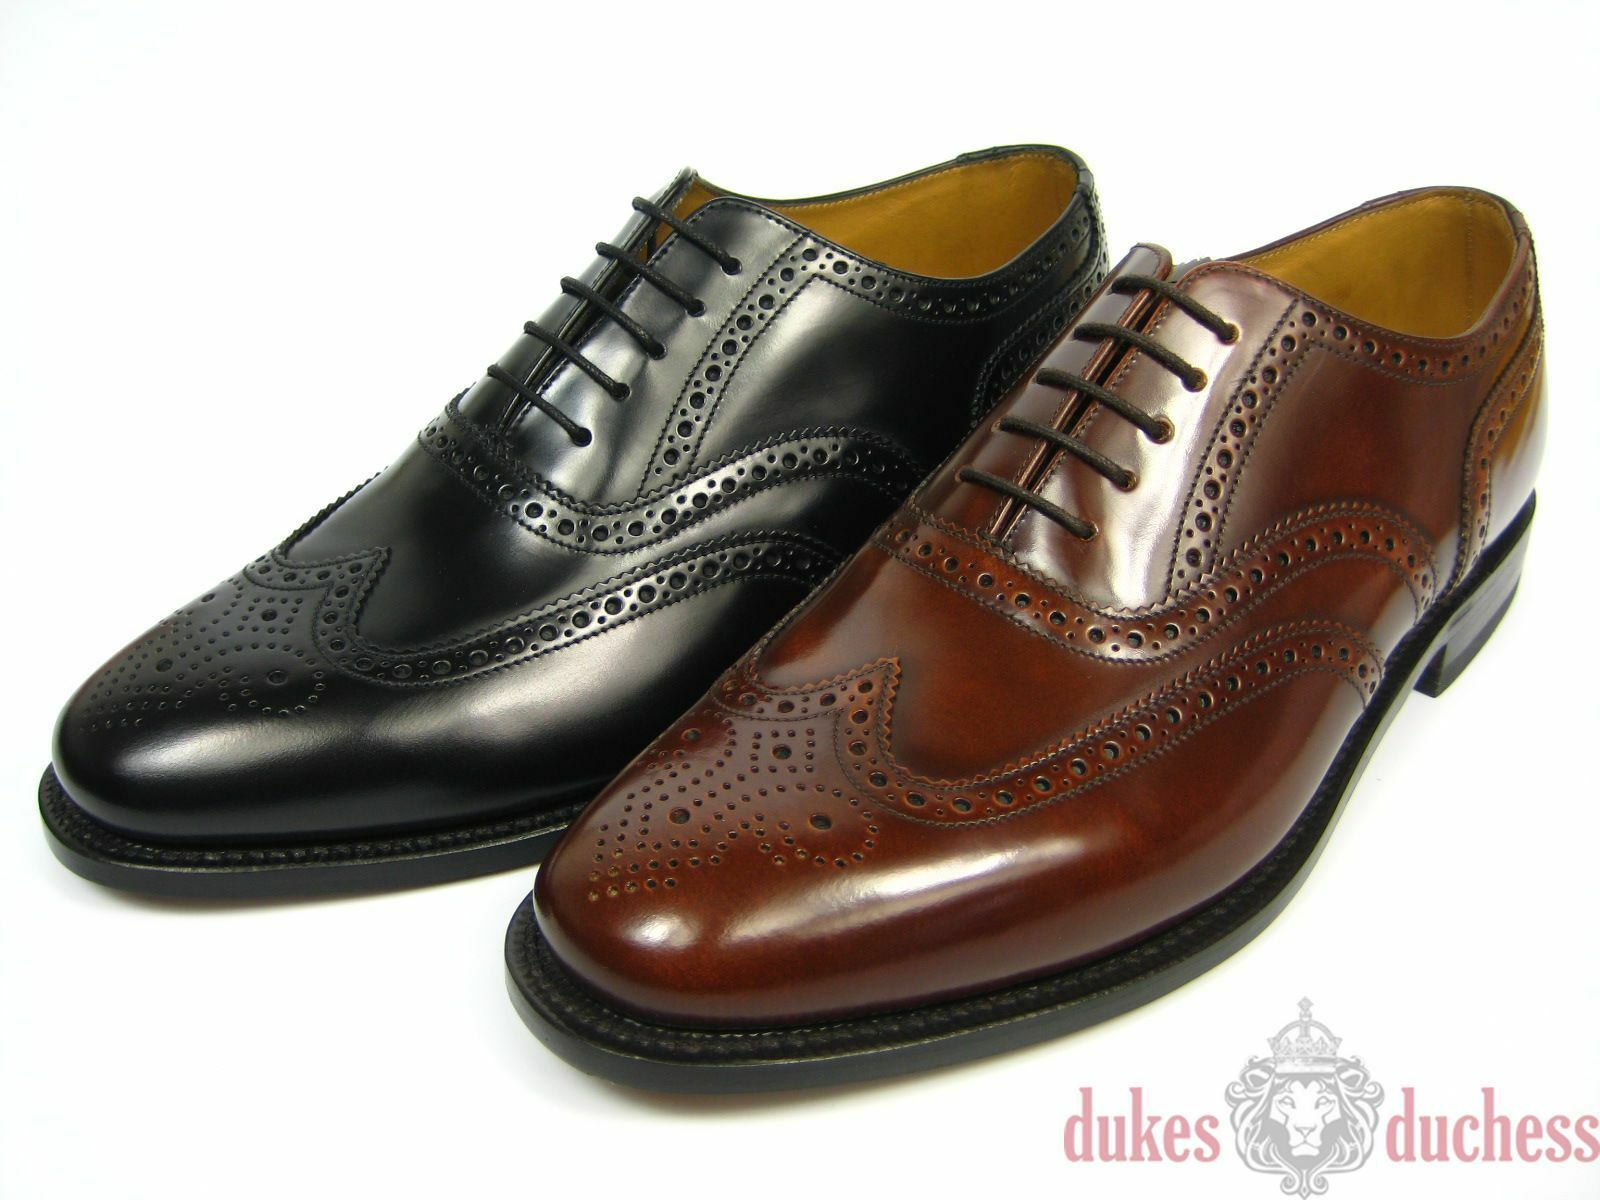 Loake marco 202 puntadas zapatos de piel Budapester hormas goodyear welted